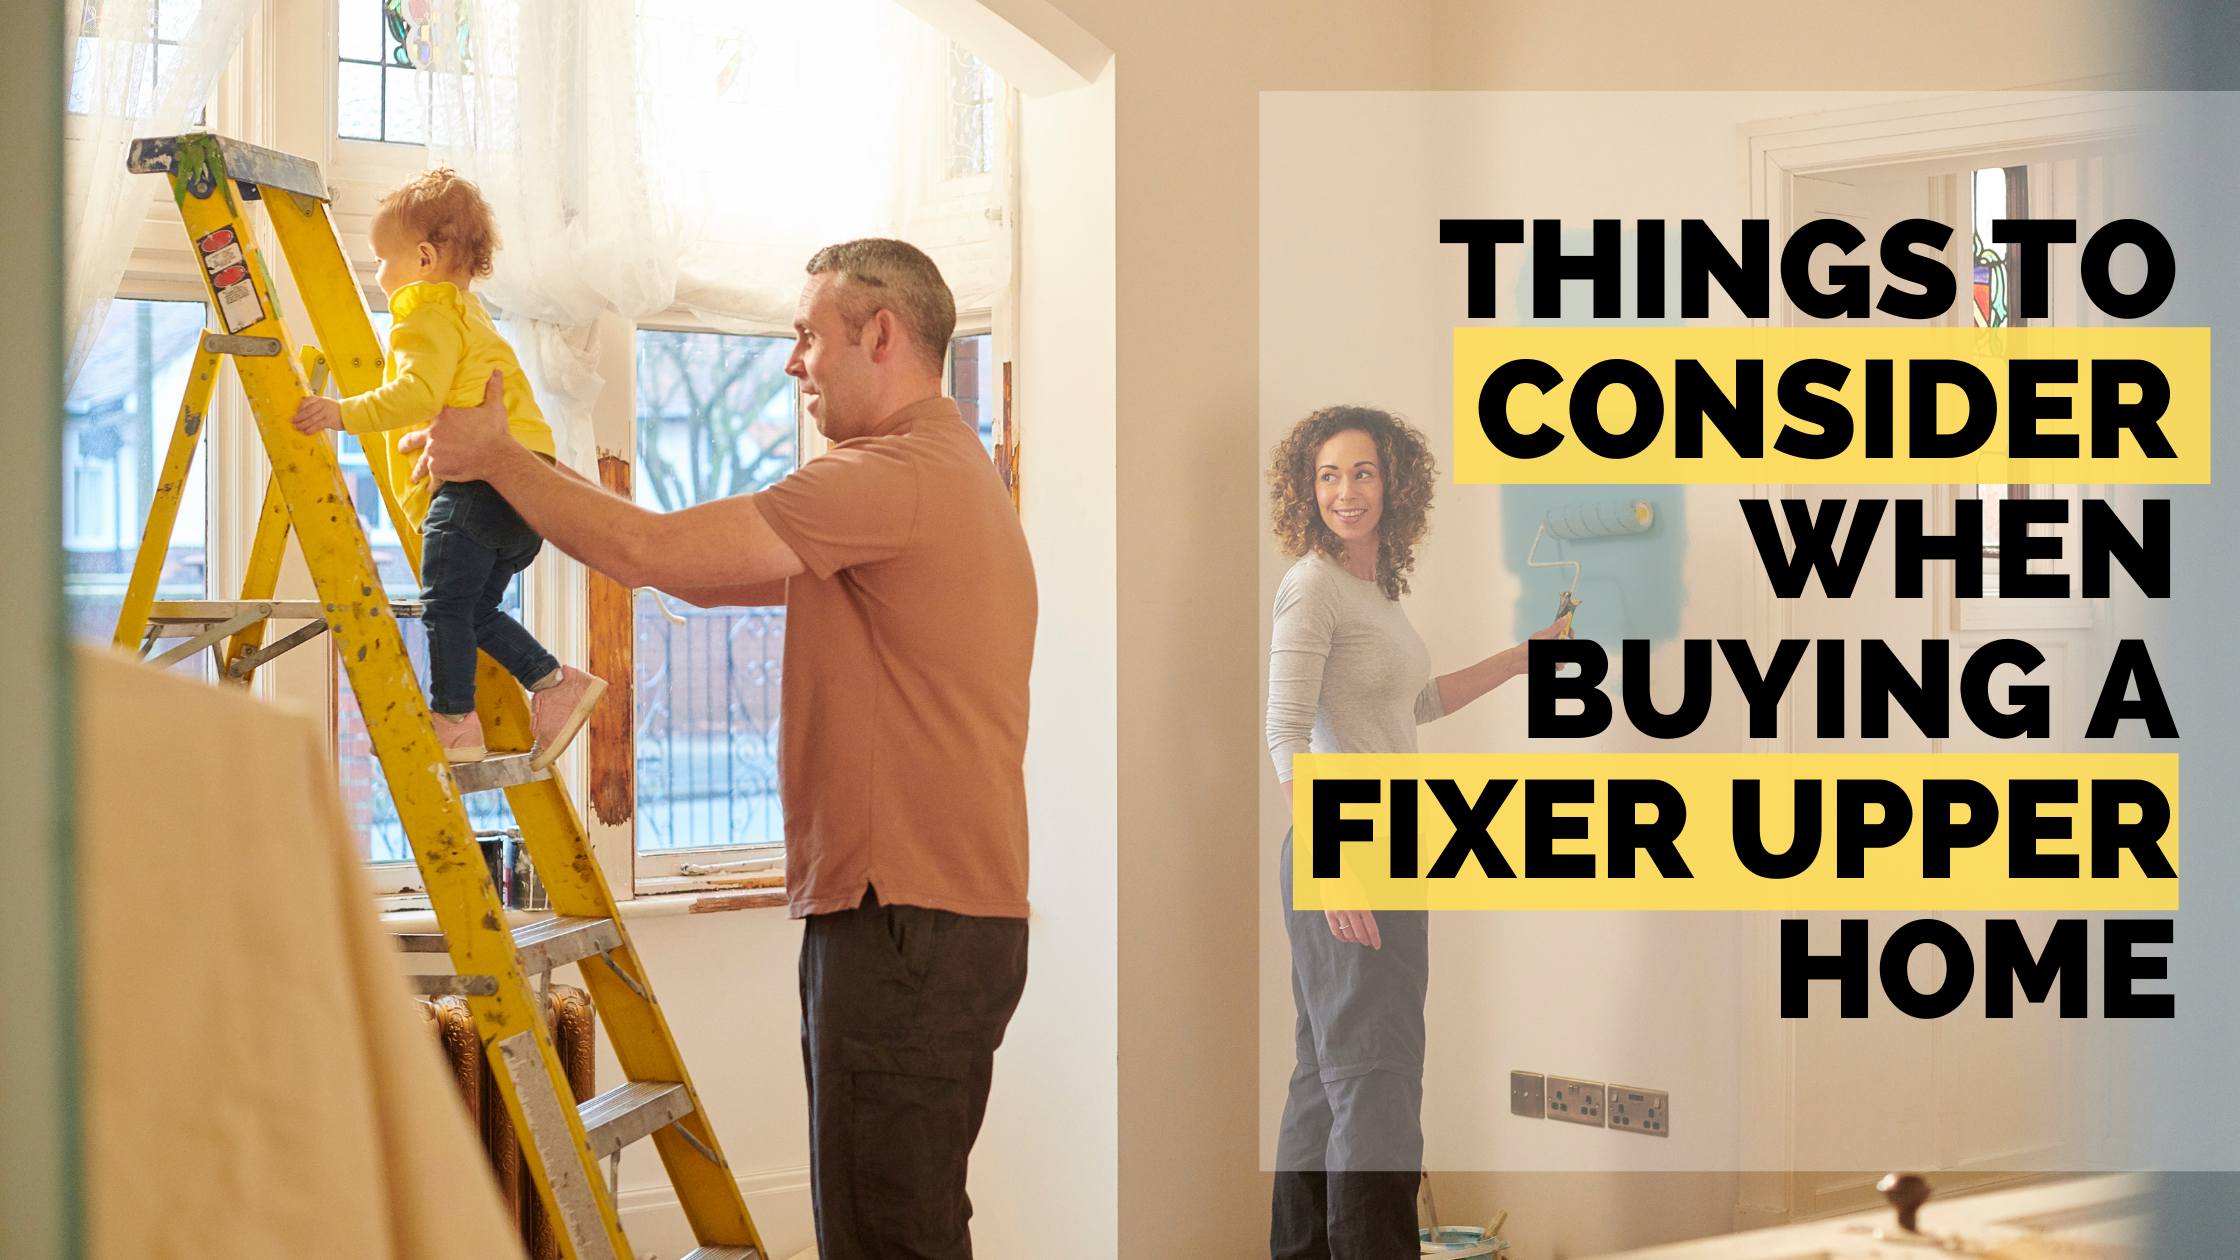 Things to Consider When Buying a Fixer Upper Home